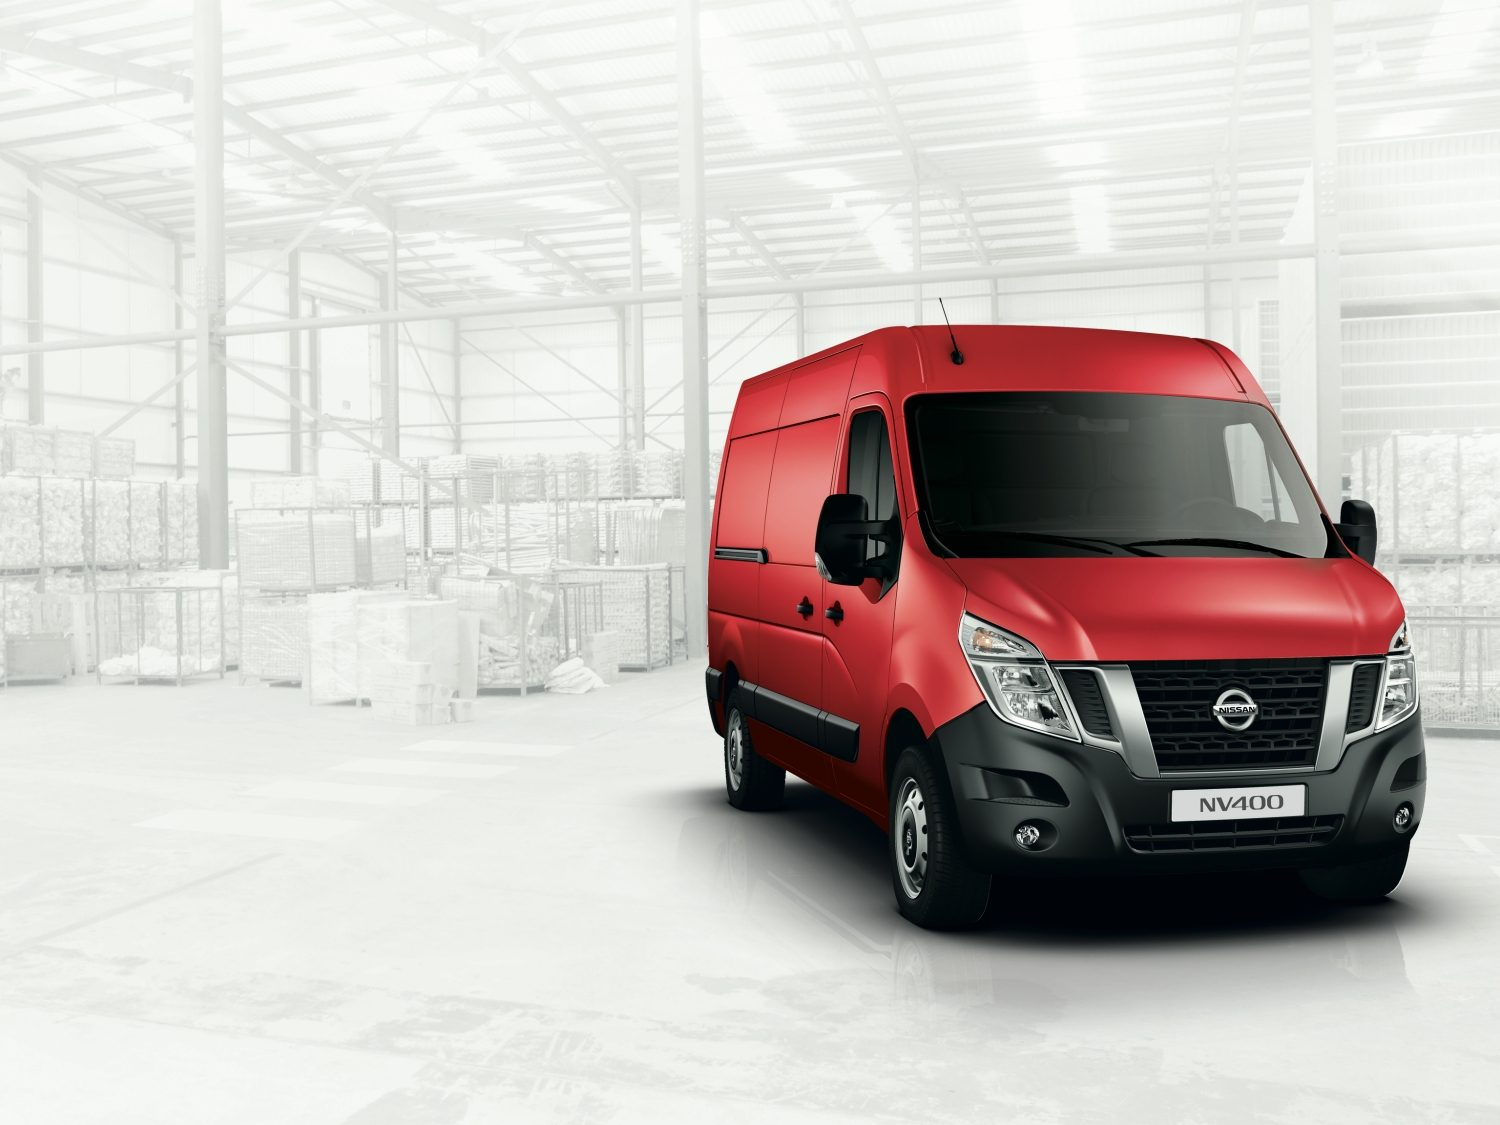 Nissan NV400 Red – Forhjulsdrift